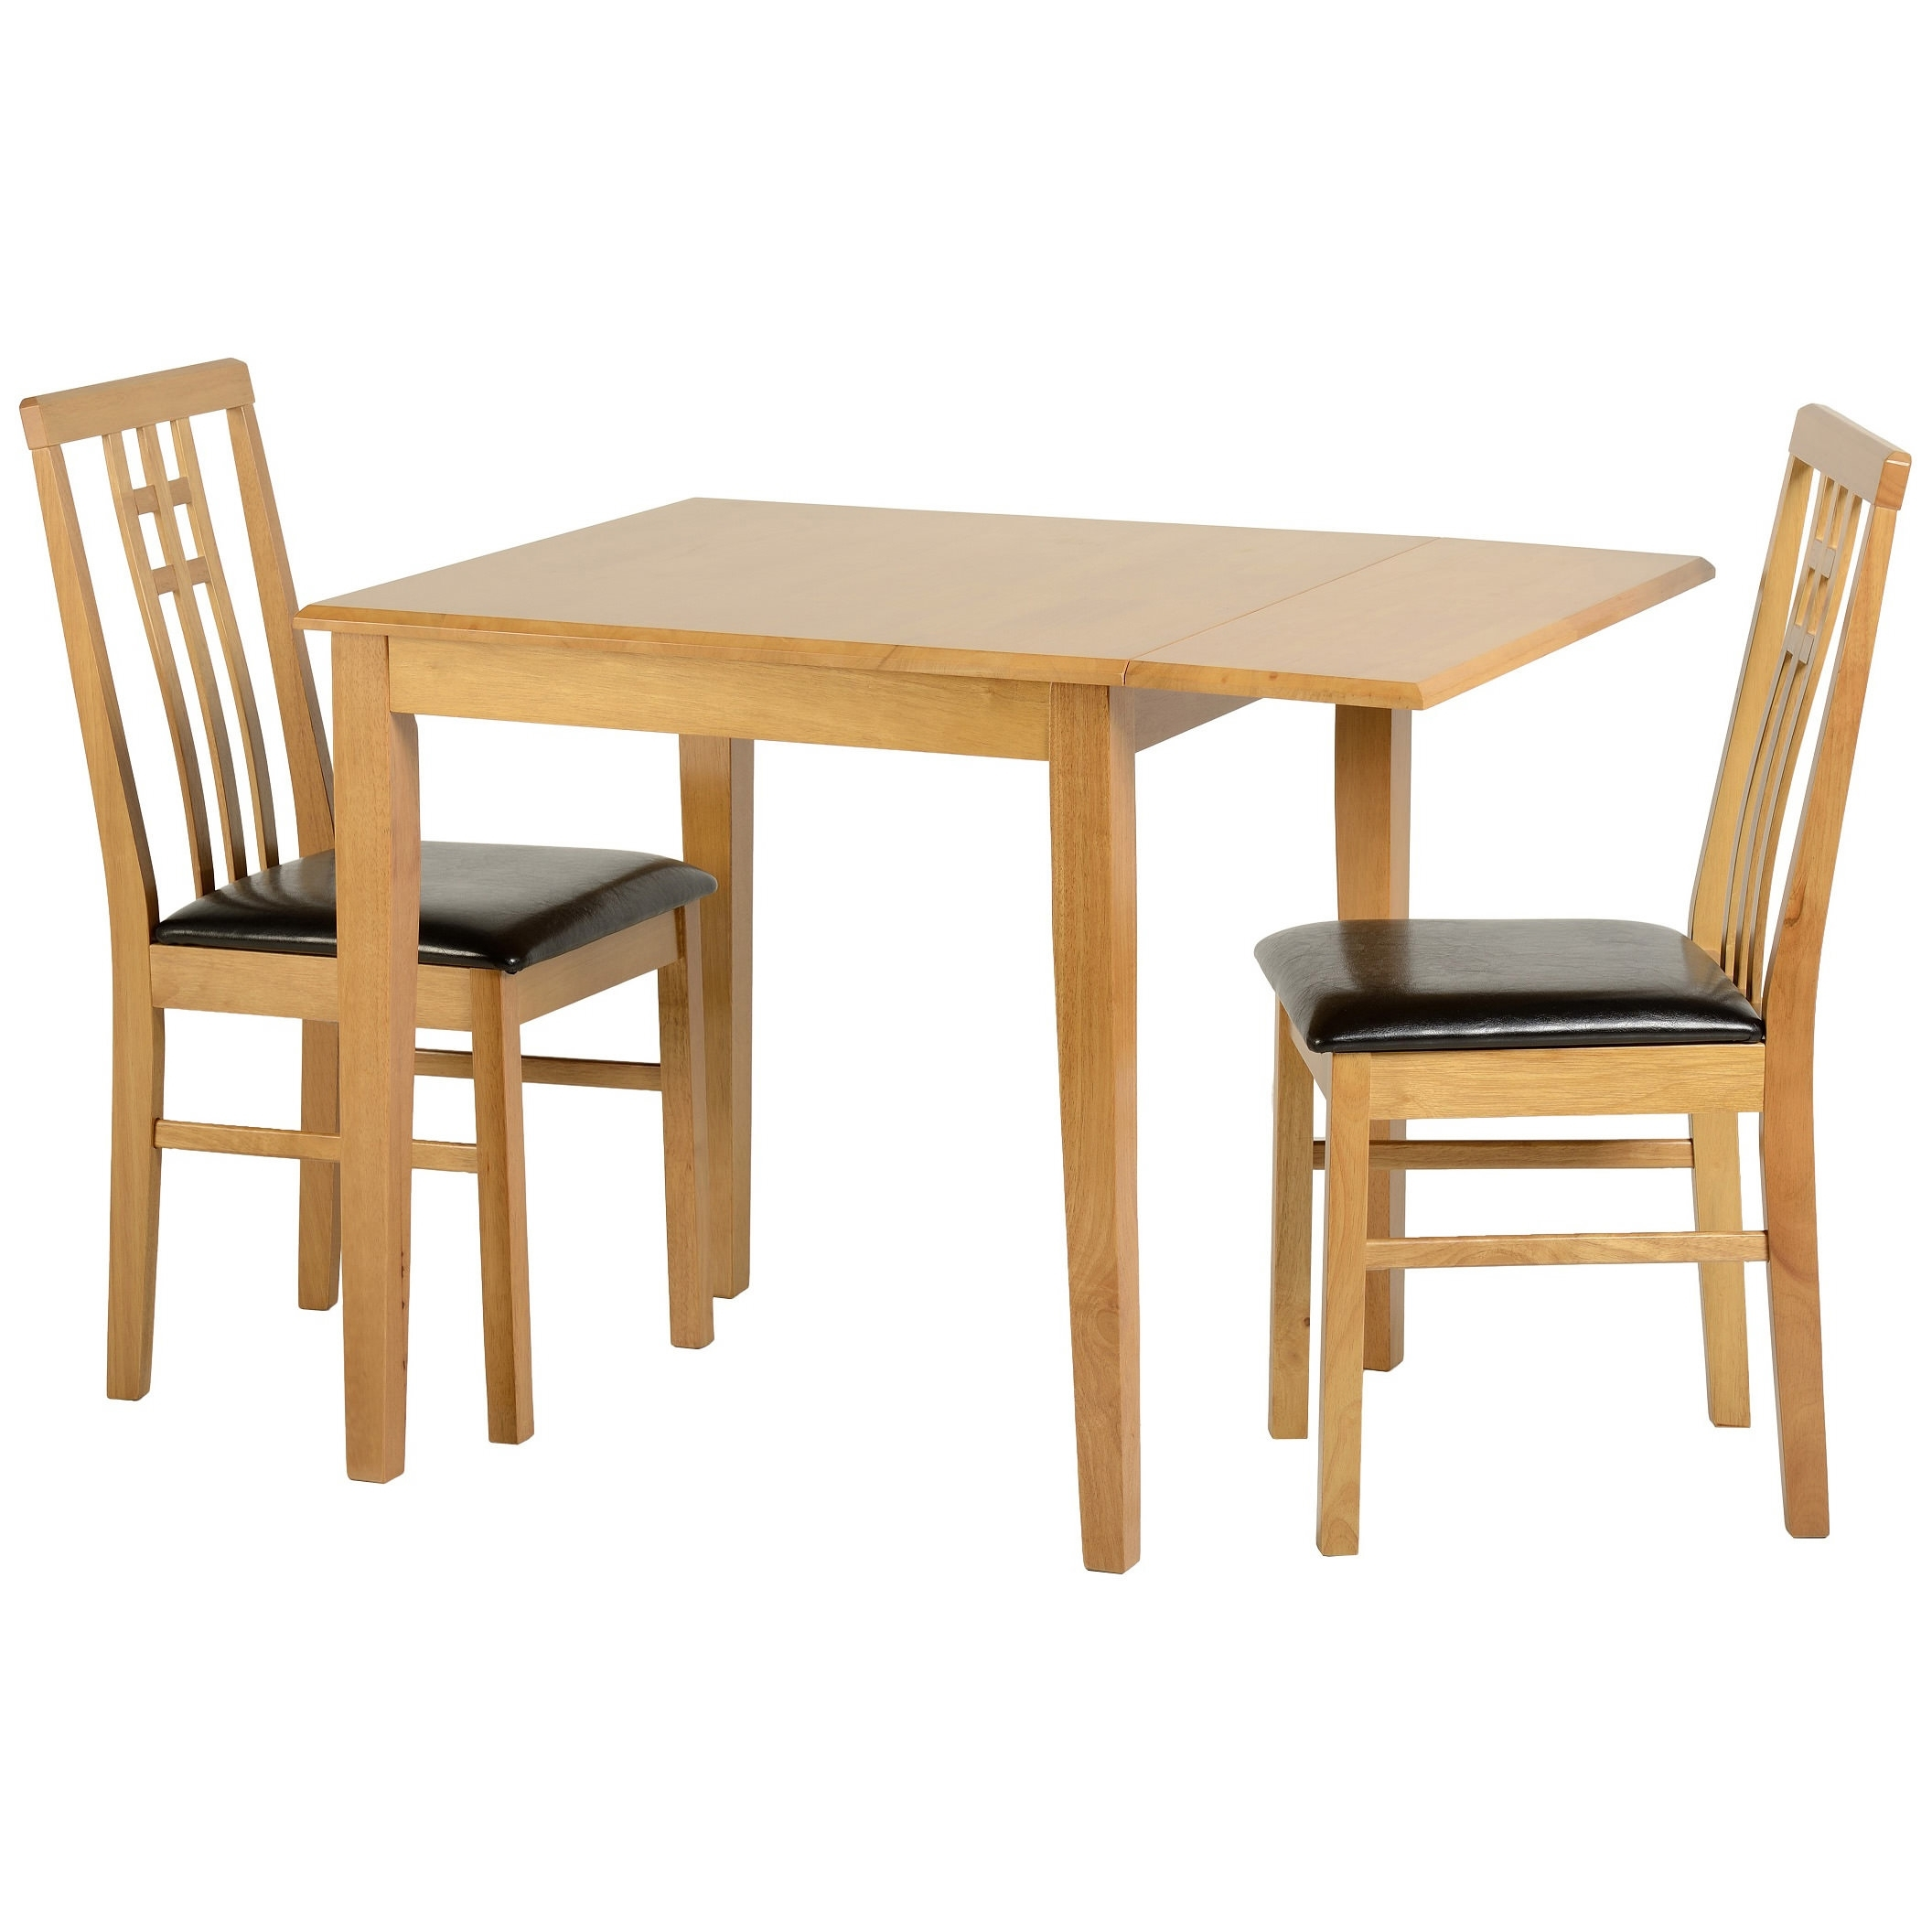 Oak Square Extending Extendable Dining Table And Chair Set With 2 In Most Recently Released Square Extending Dining Tables (View 11 of 25)